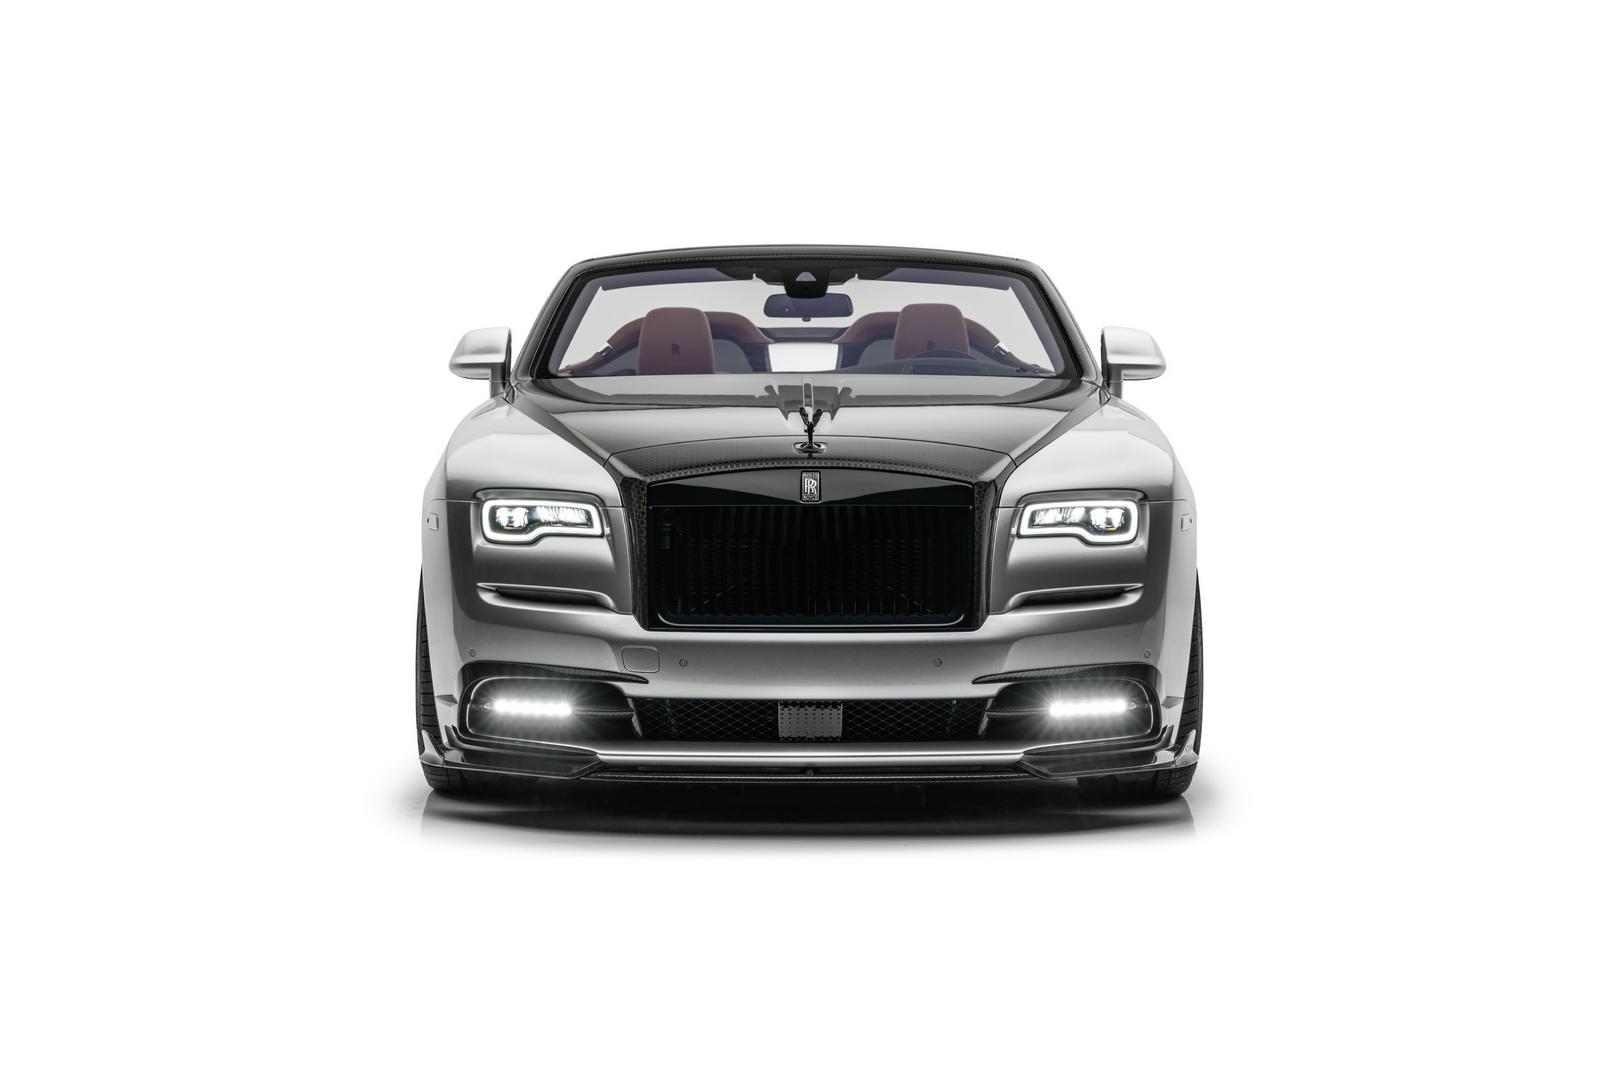 Mansory RR Dawn front